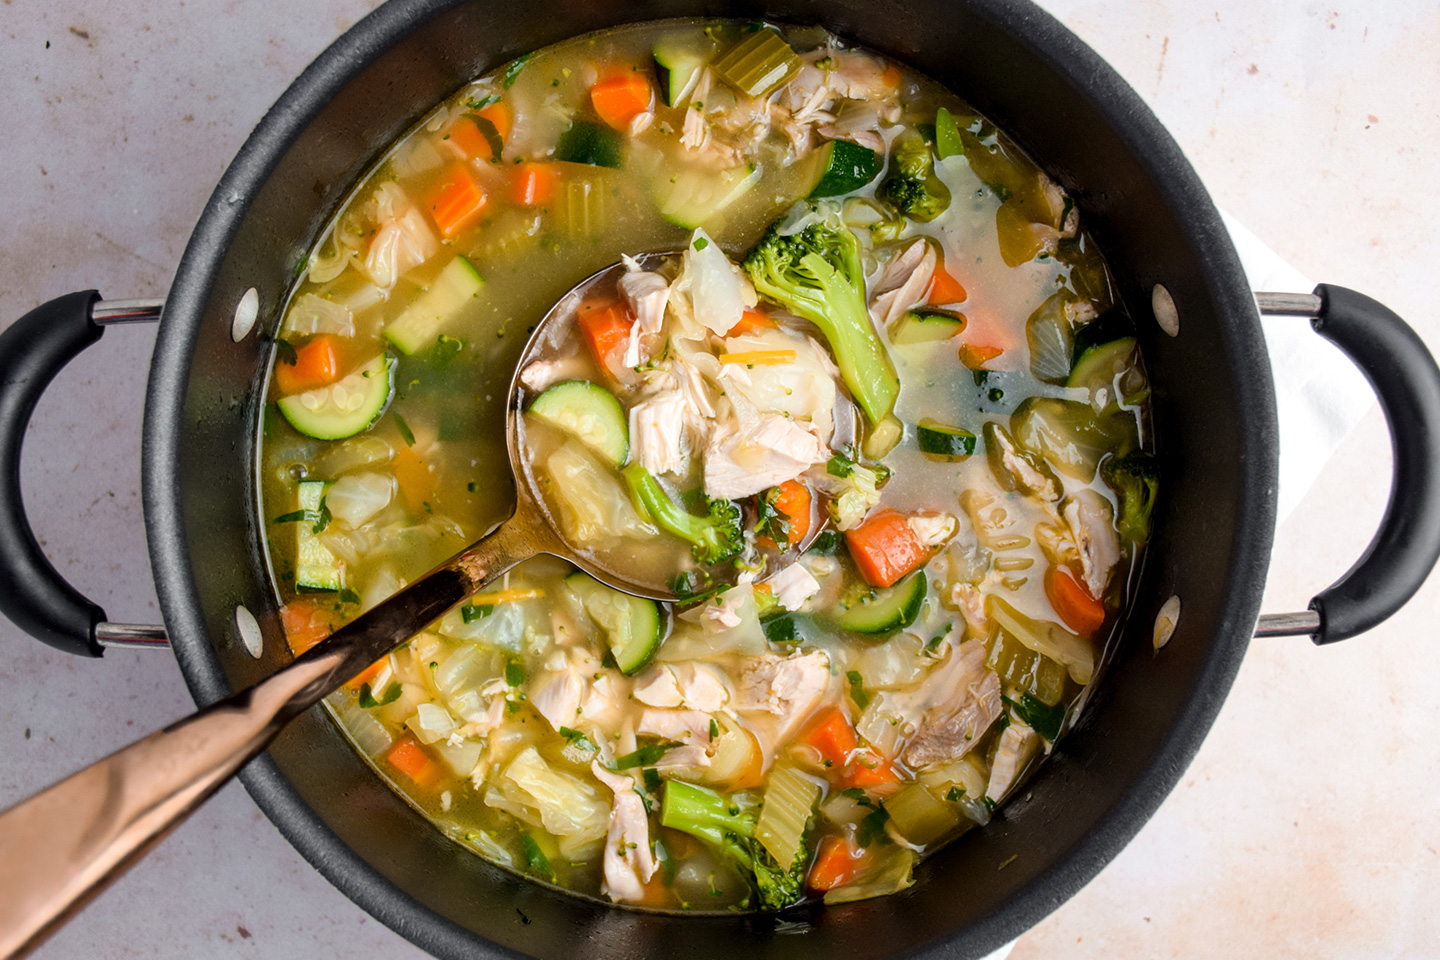 """<p style=""""text-align: right;""""><a href=""""/sick-day-soup"""">Sick Day Soup</a></p> <p style=""""text-align: right;"""">Plant-based, Paleo, &amp; Low Carb</p>"""